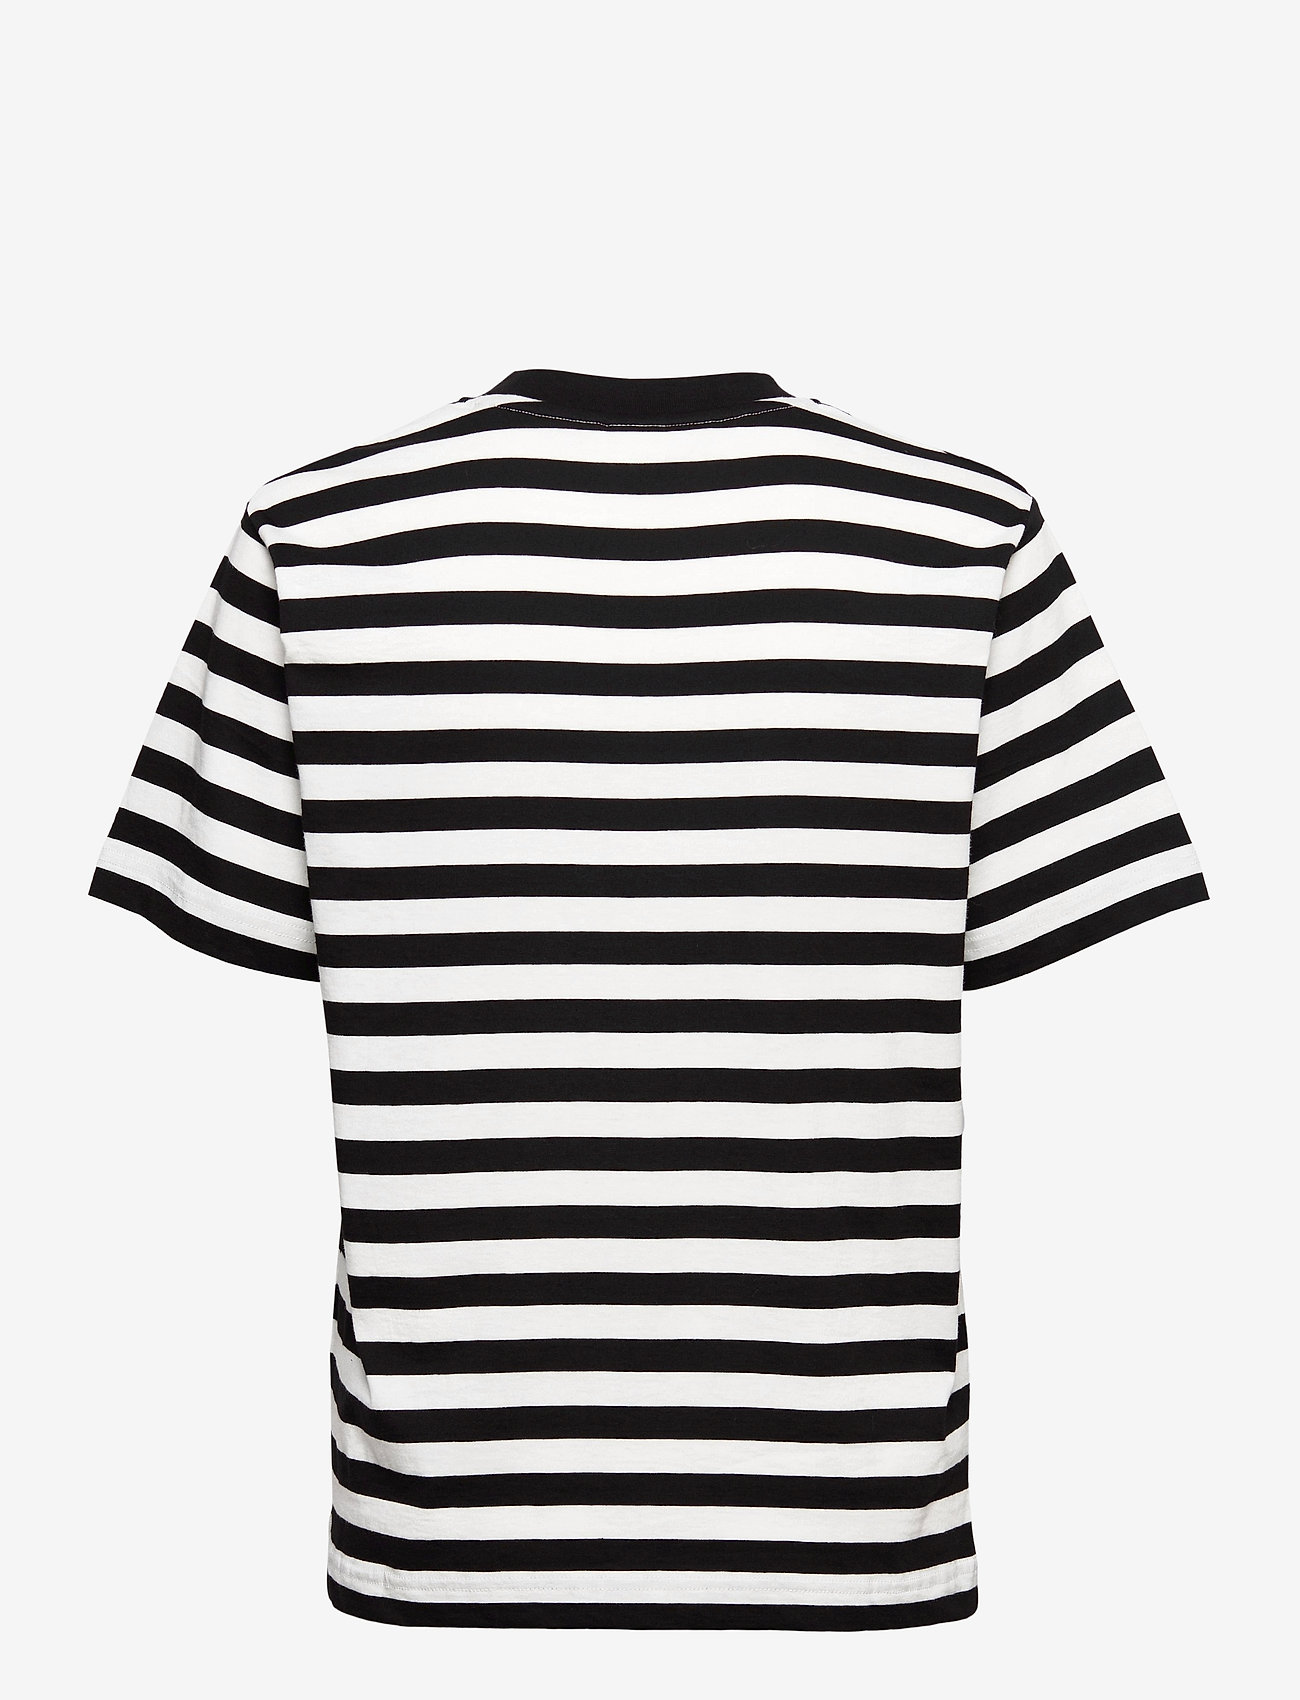 Baum und Pferdgarten - JALO - t-shirts - black and white stripe - 1